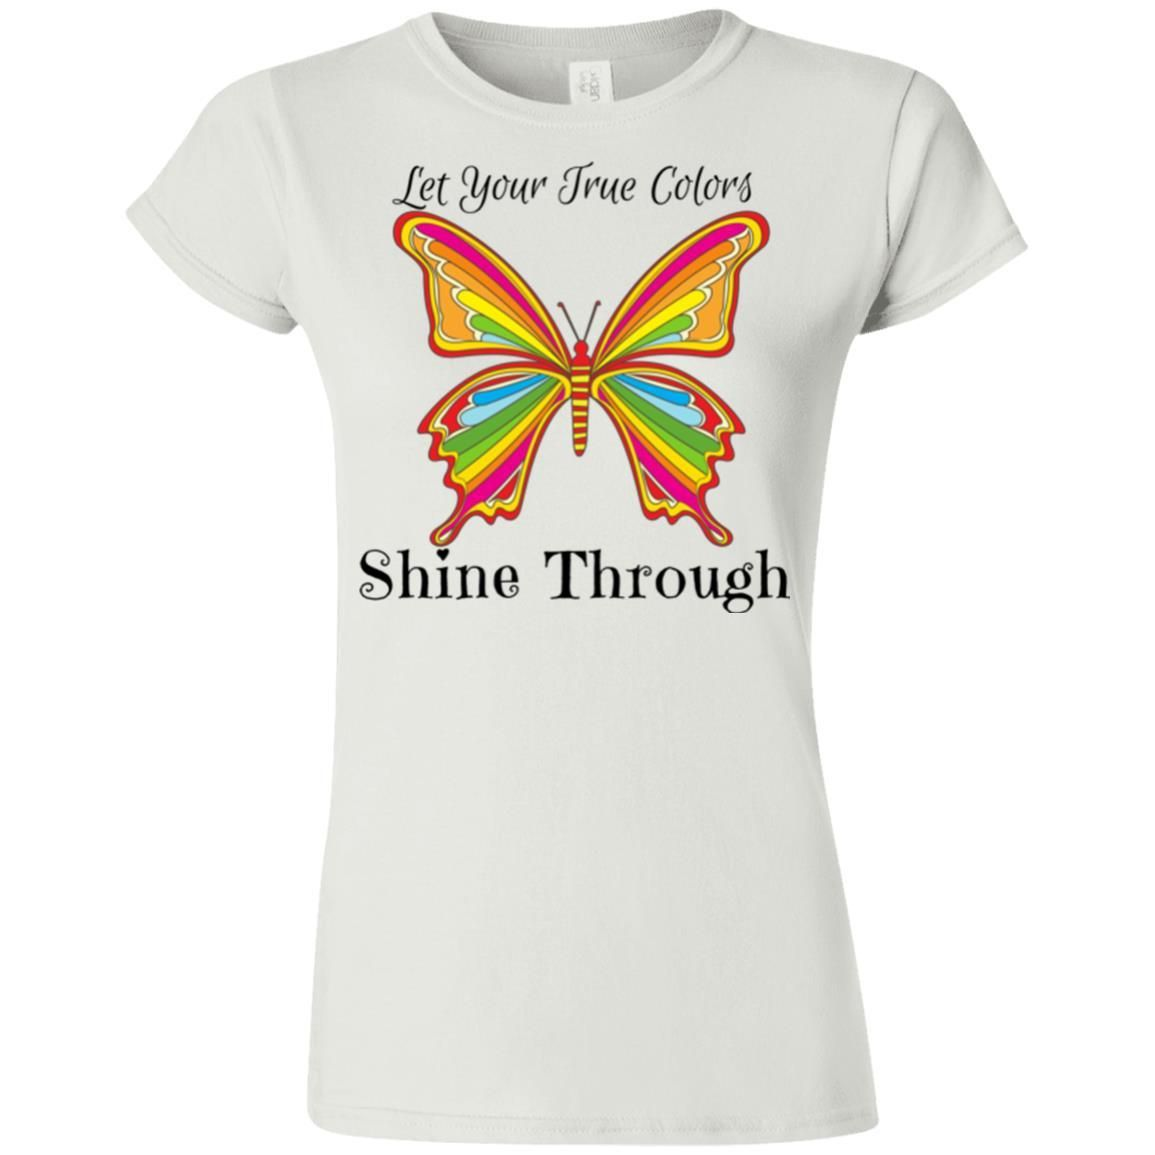 bdd9f9f6bf3e True Colors - Gildan Softstyle Ladies' T-Shirt positive quotes,positive  quotes for